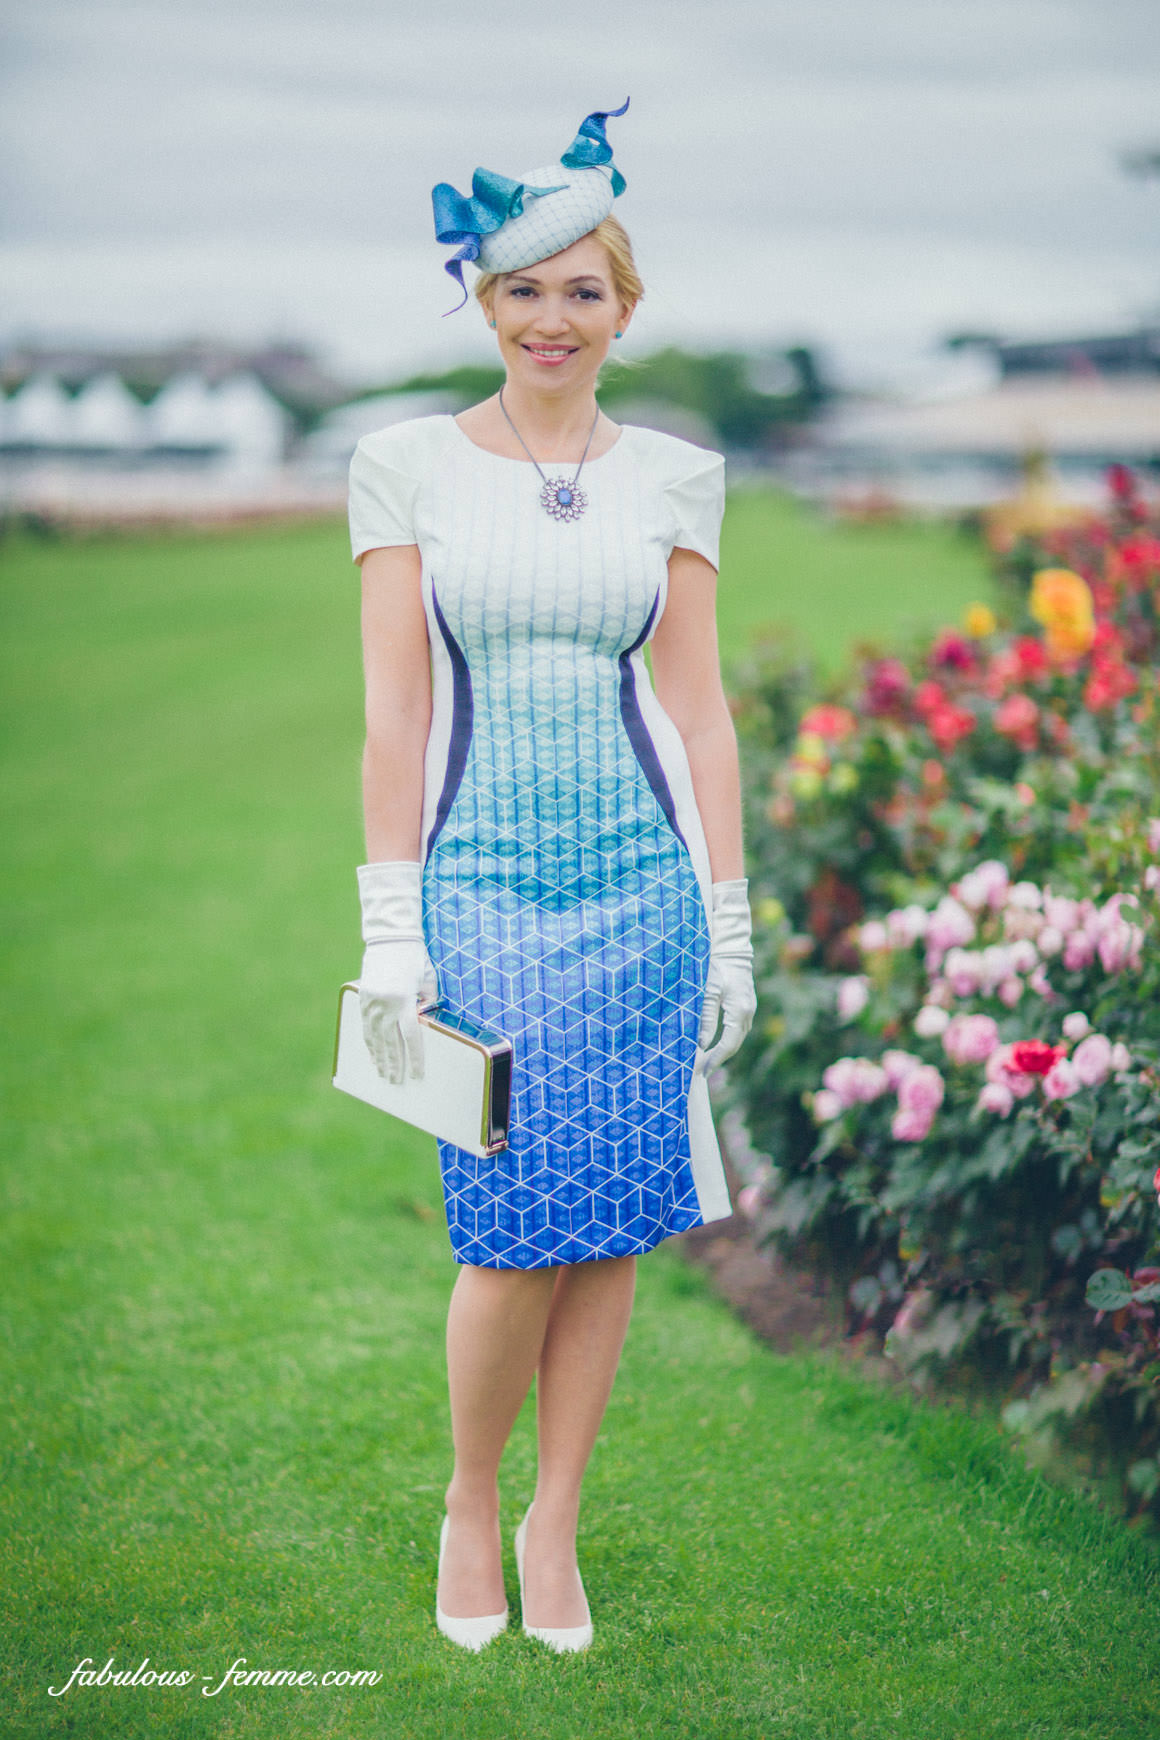 spring racing - what to wear in 2013